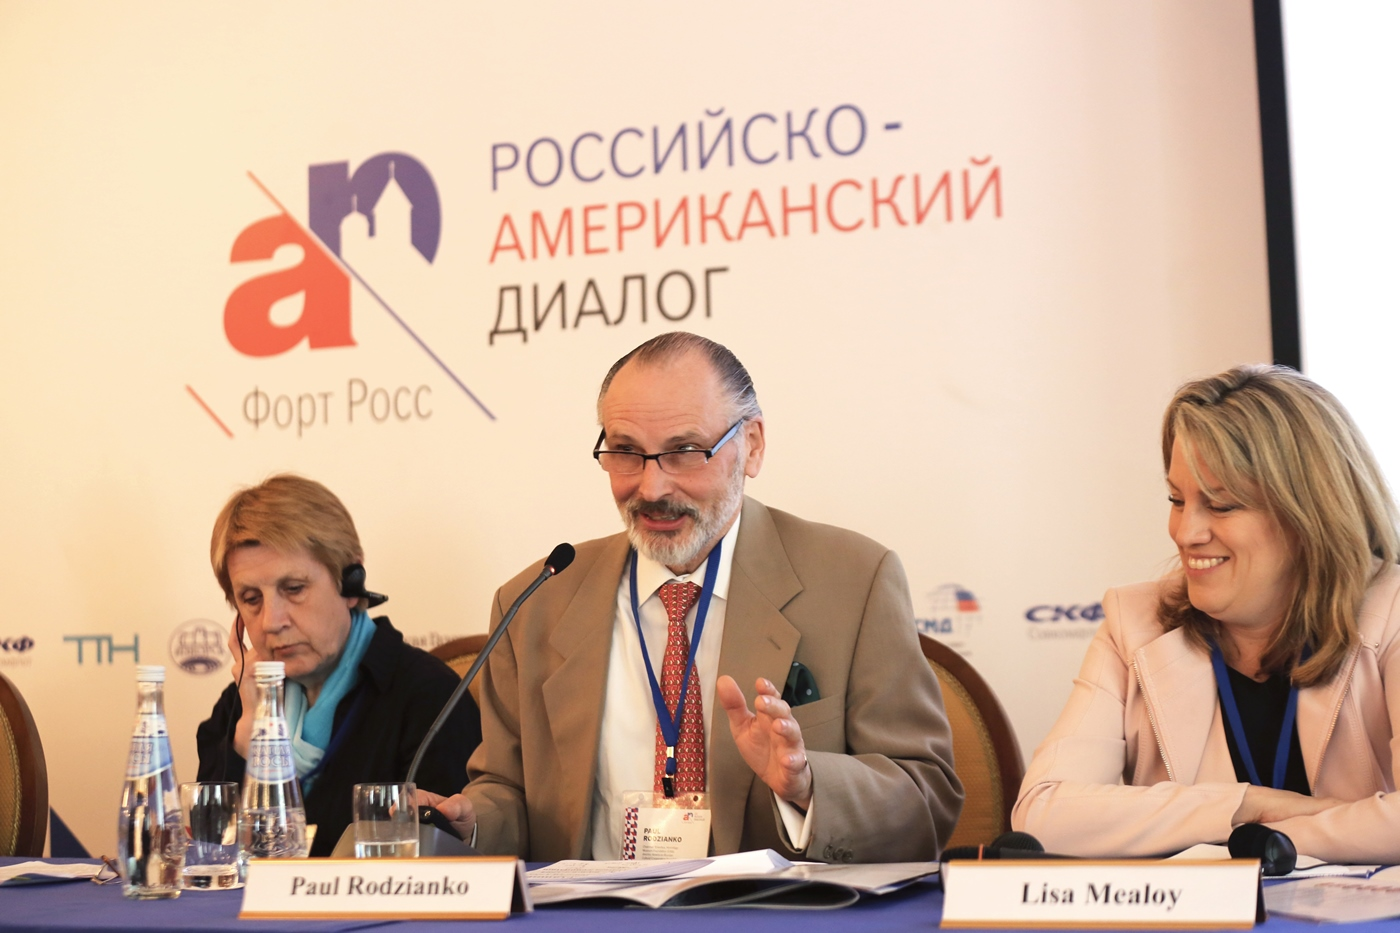 Antonina Andreyeva, director of the Veliky Ustyug Museum Reserve, Paul Rodzianko, vice-chairman of the Board of Directors of the American-Russian Cultural Cooperation Foundation, honorary chairman of the Hermitage Museum Foundation (U.S.), Lisa Mealoy, former executive director of Sutter's Fort State Historic Park.\n